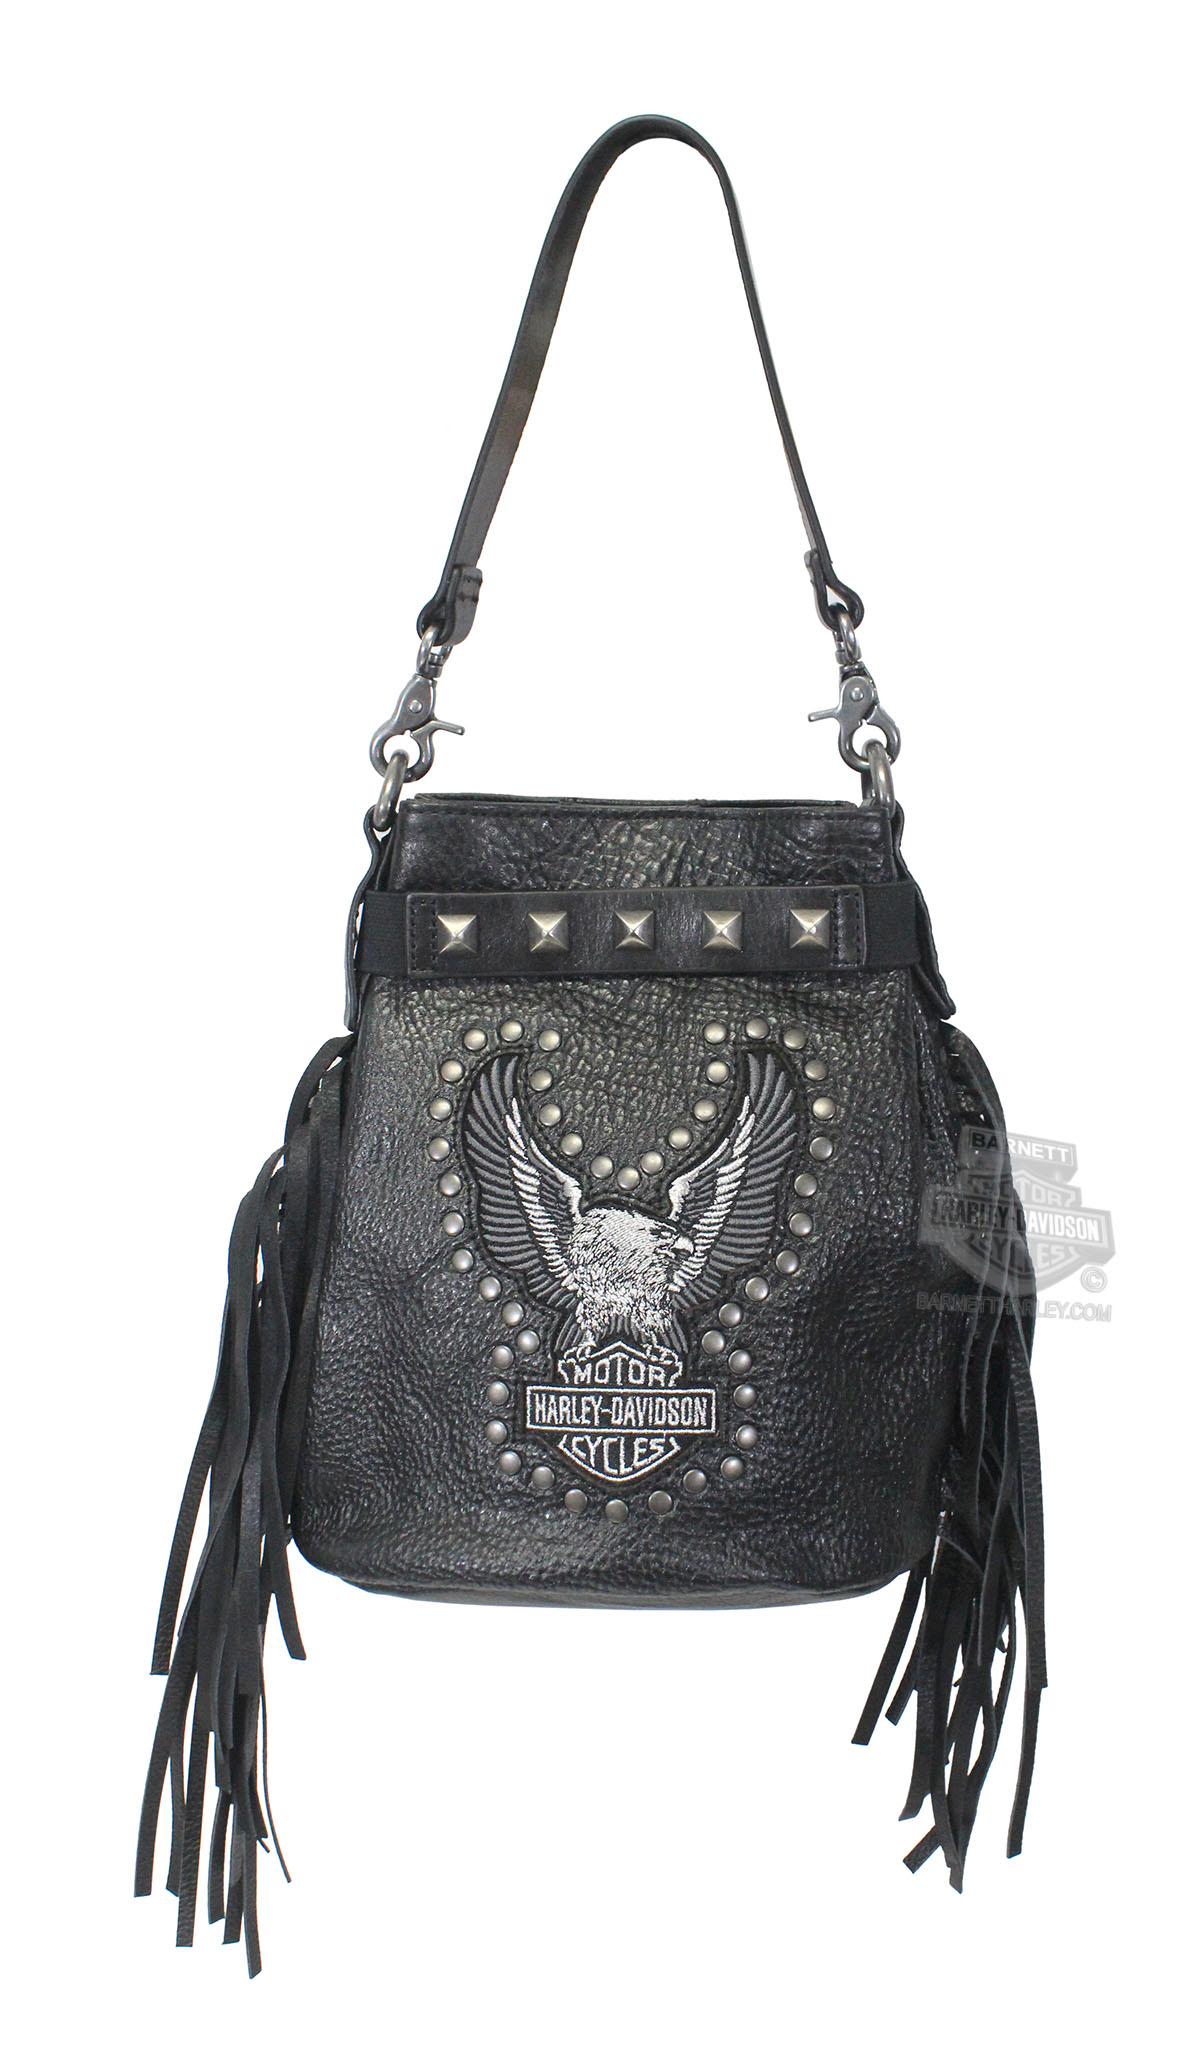 Fringe Black Leather Purse By Lodis Tap To Expand